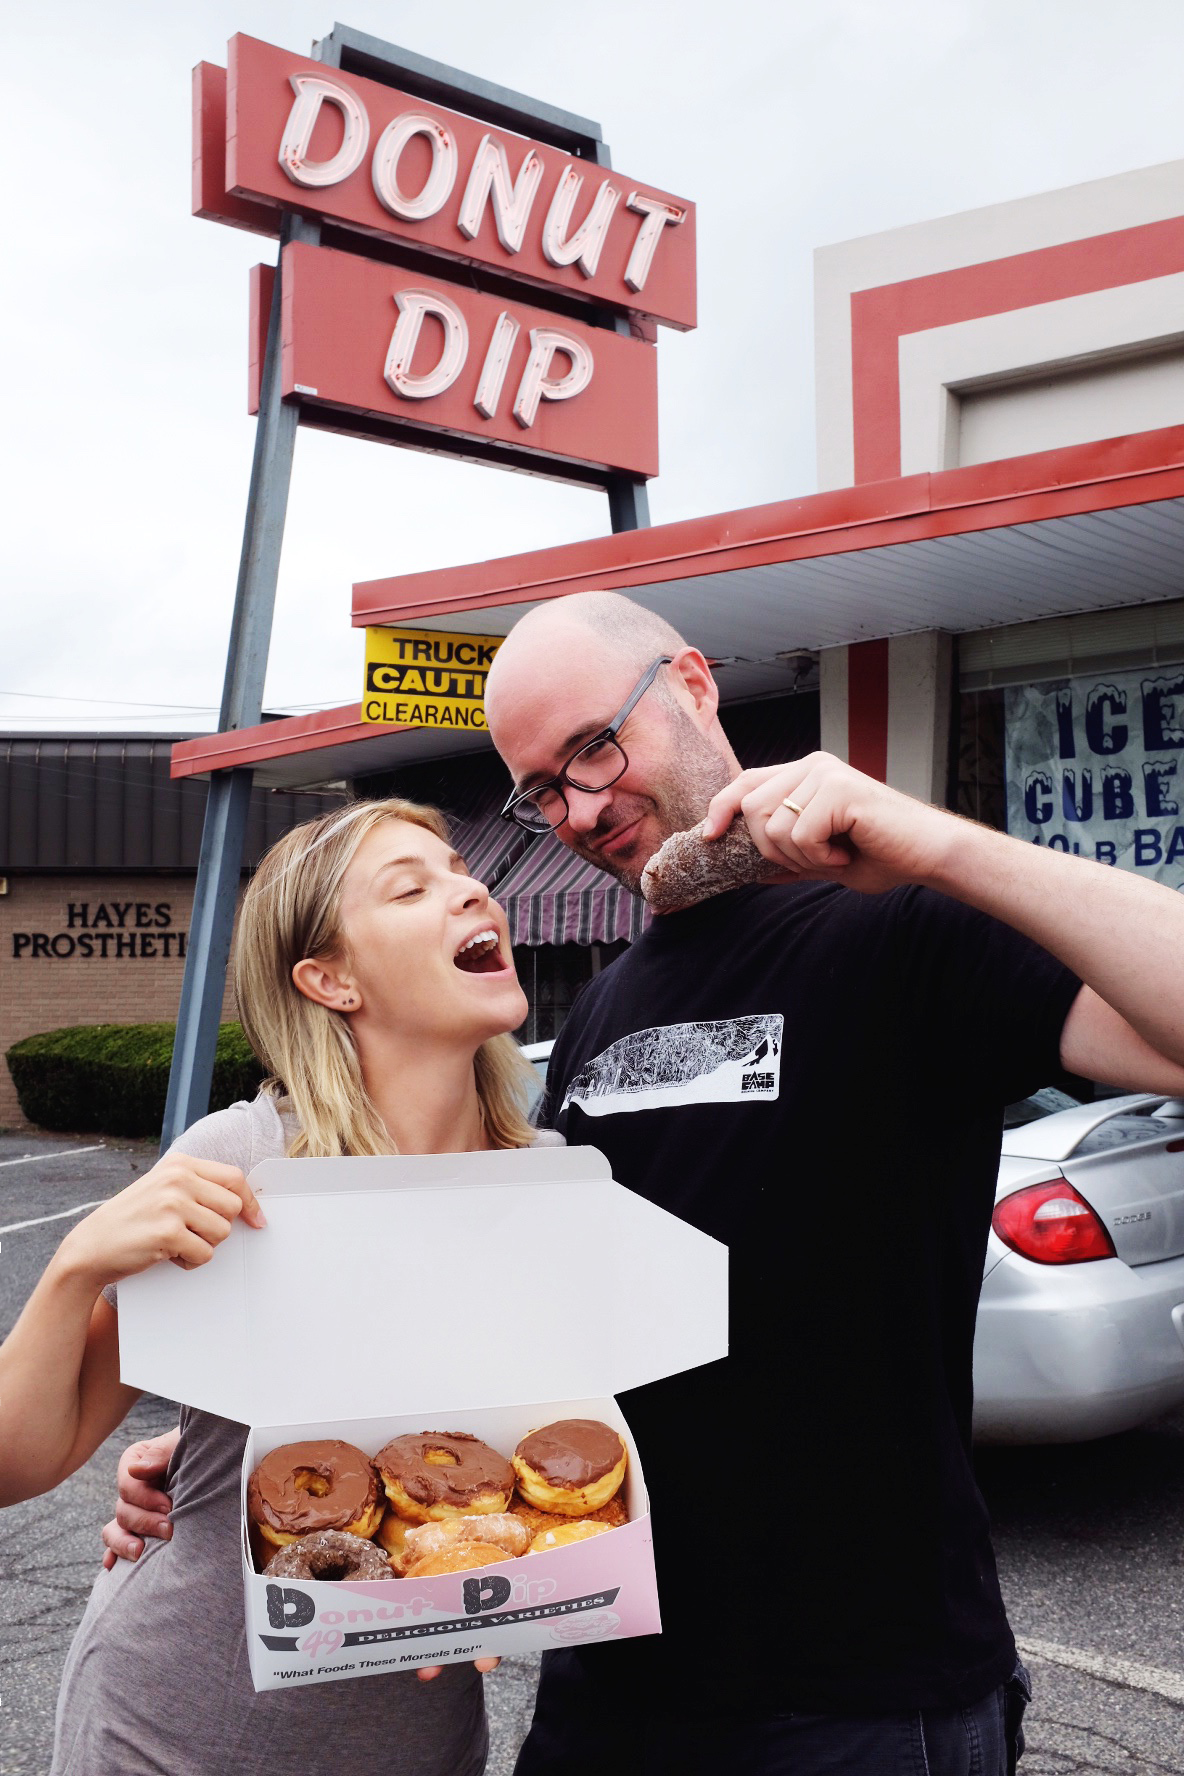 We love donuts.